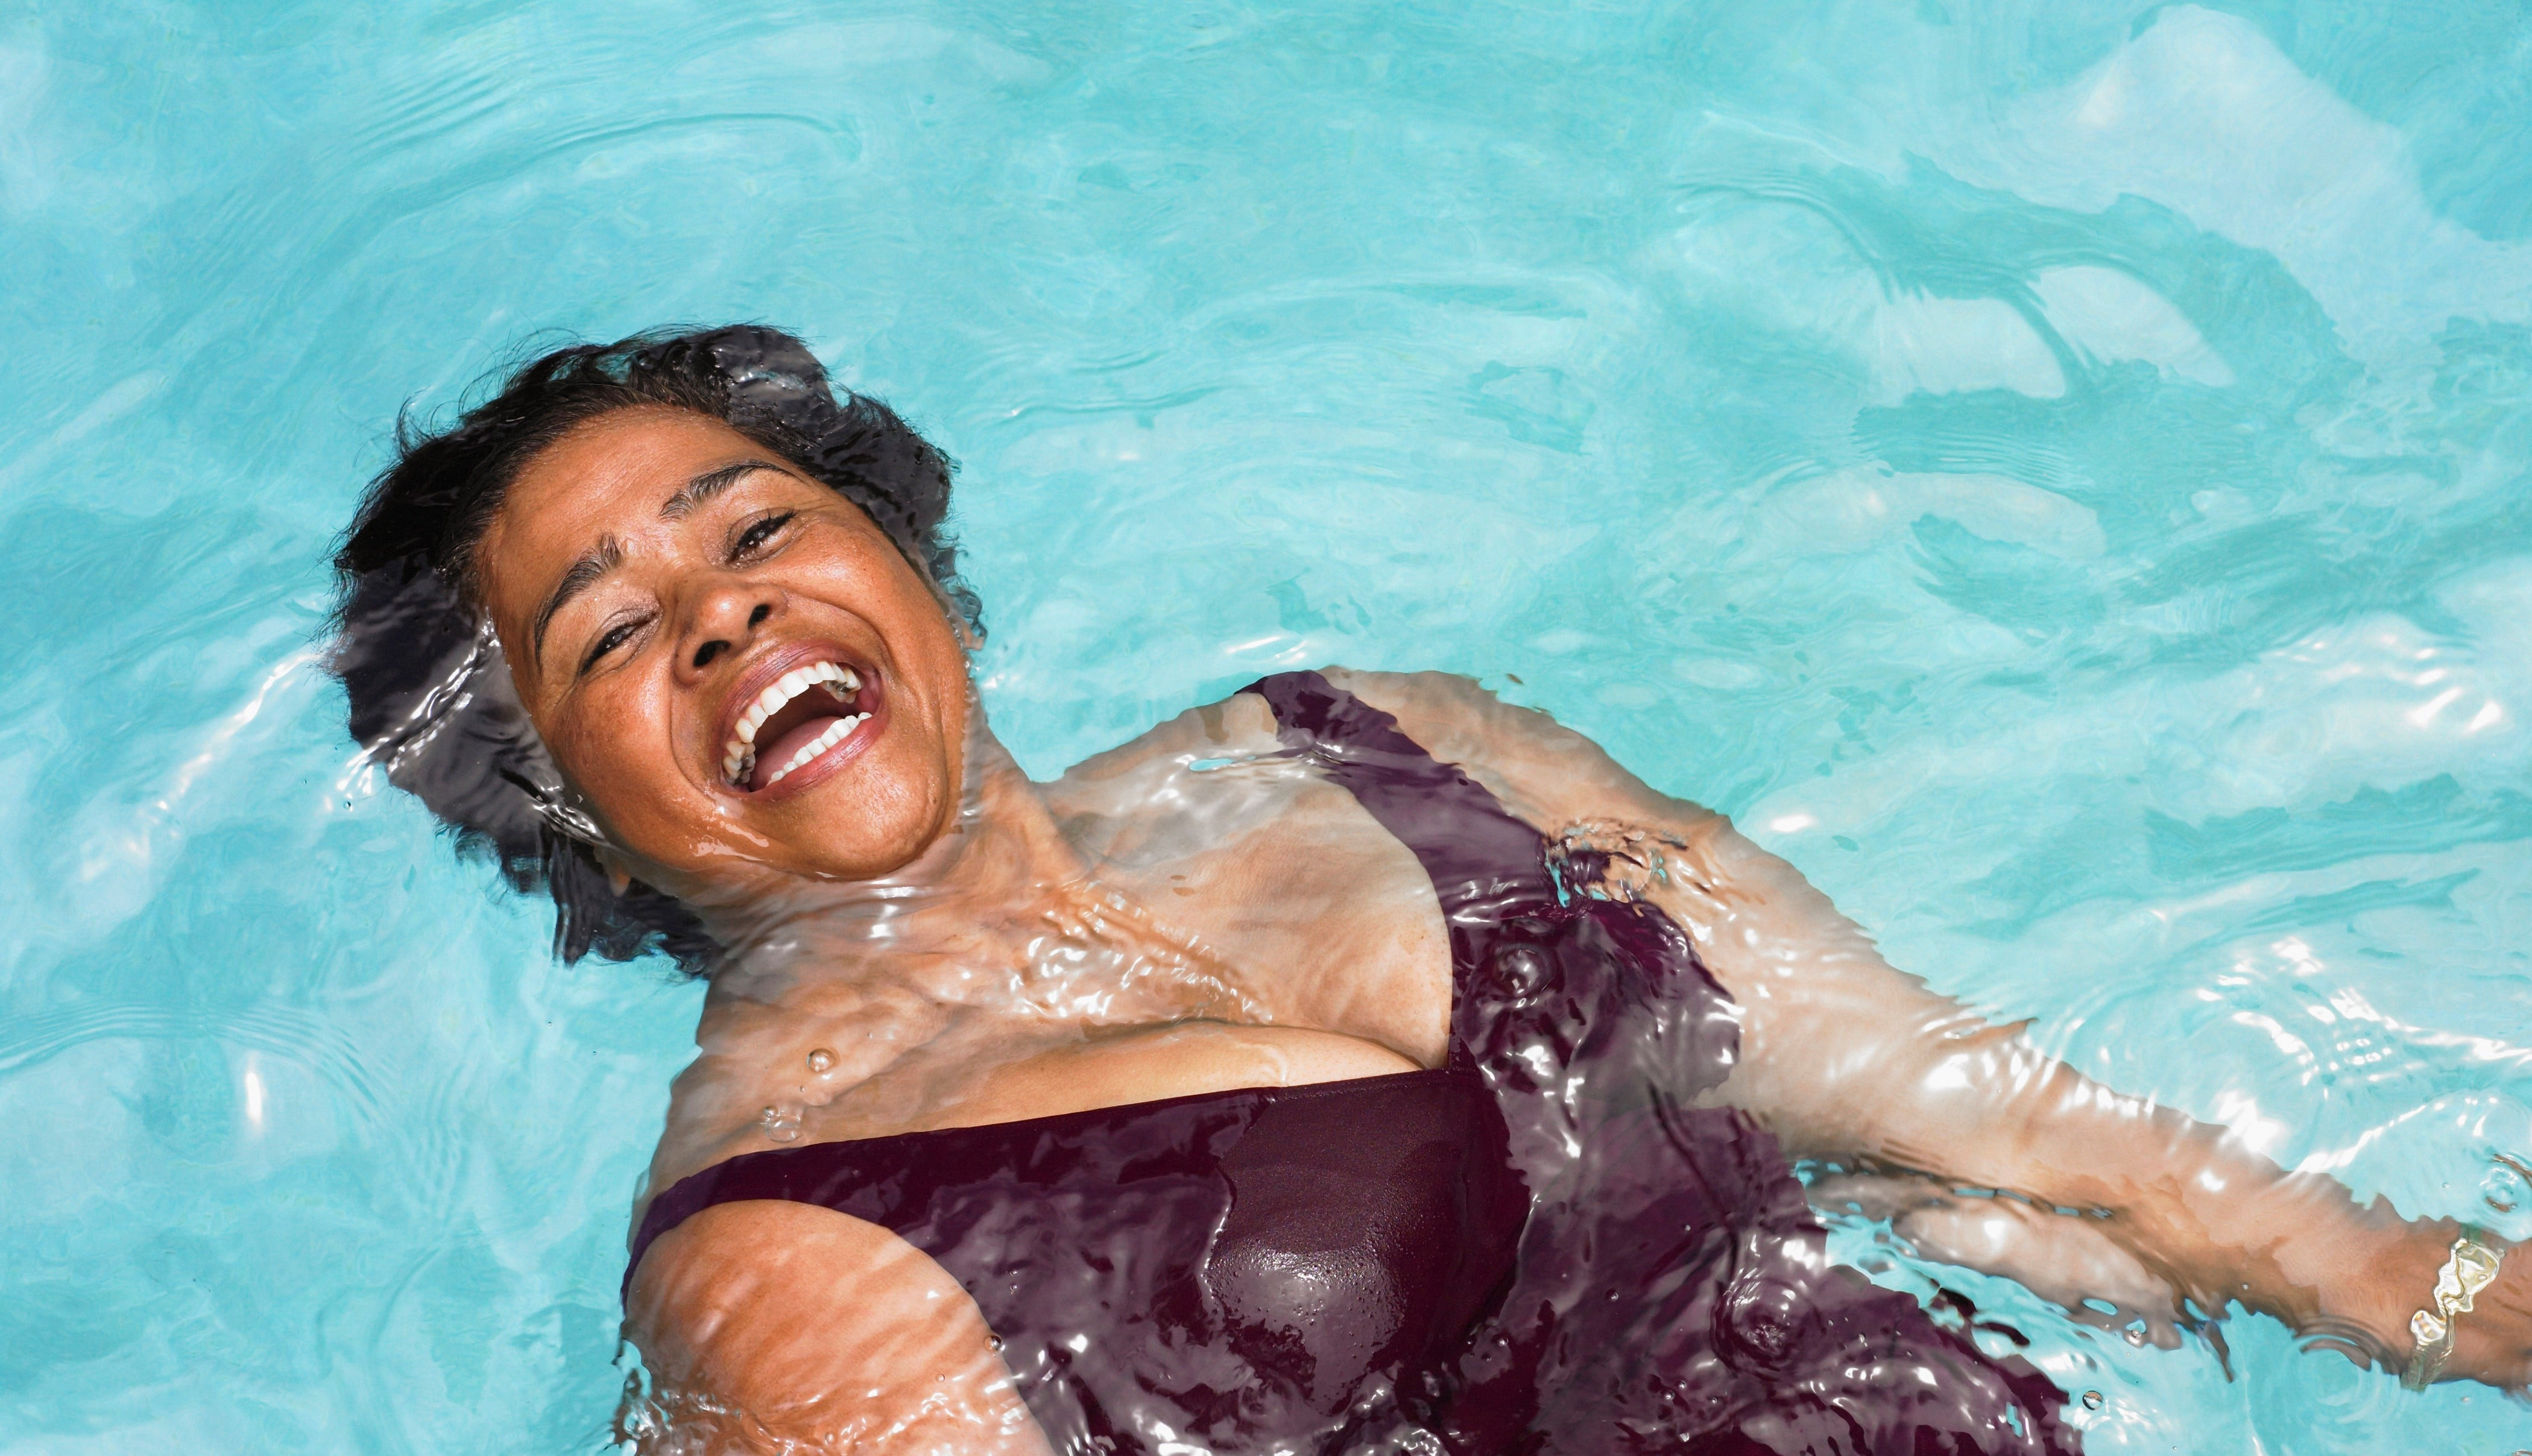 A lady smiling as she takes part in Swim22, Diabetes UK's swimming challenge